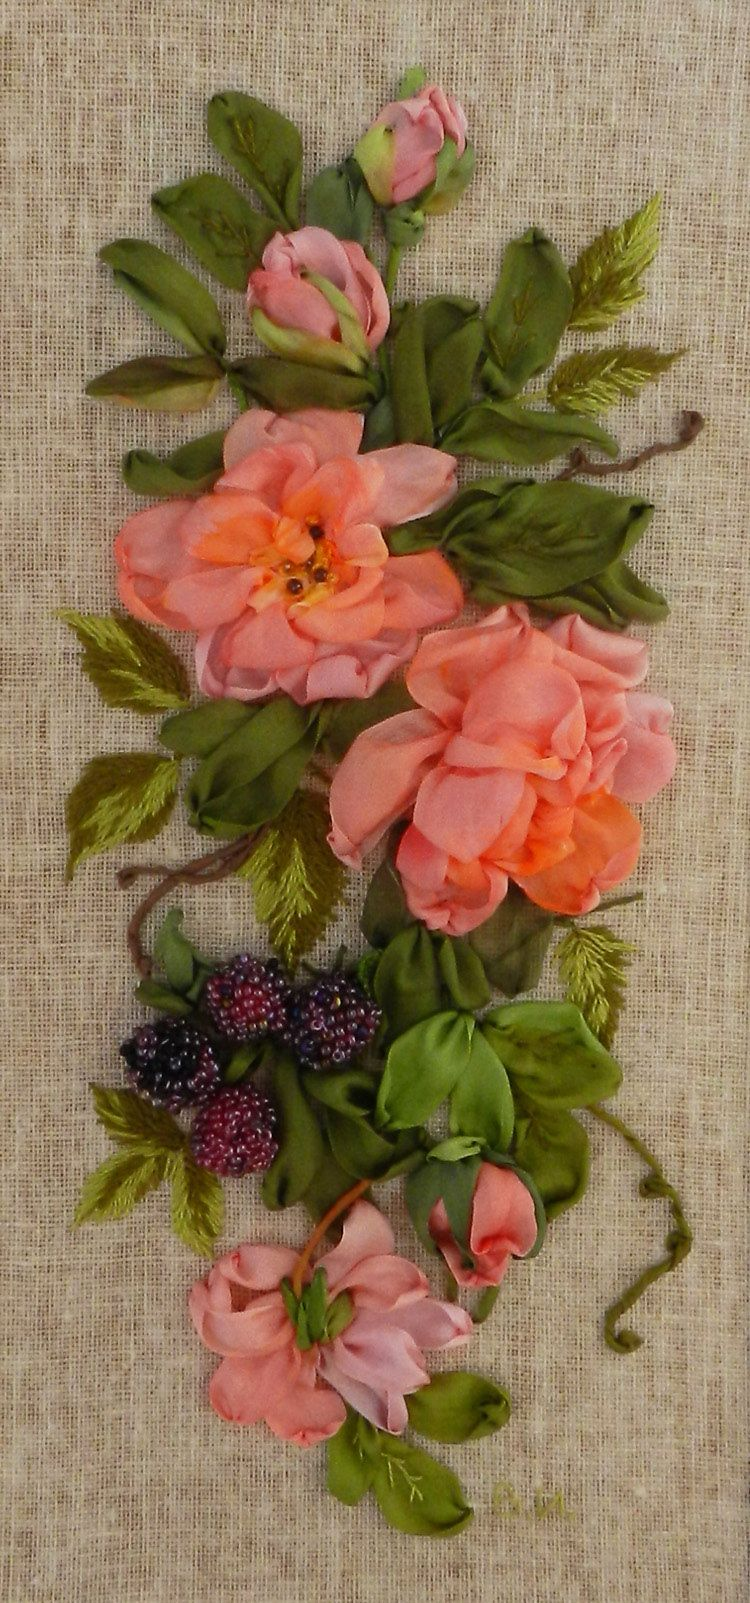 Silk ribbon embroidery by valentina ilkova nakhodka russia exquisite ribbon embroidered roses with beaded berries is the work of valentina ilkova who lives in the small town of nakhodka in russia izmirmasajfo